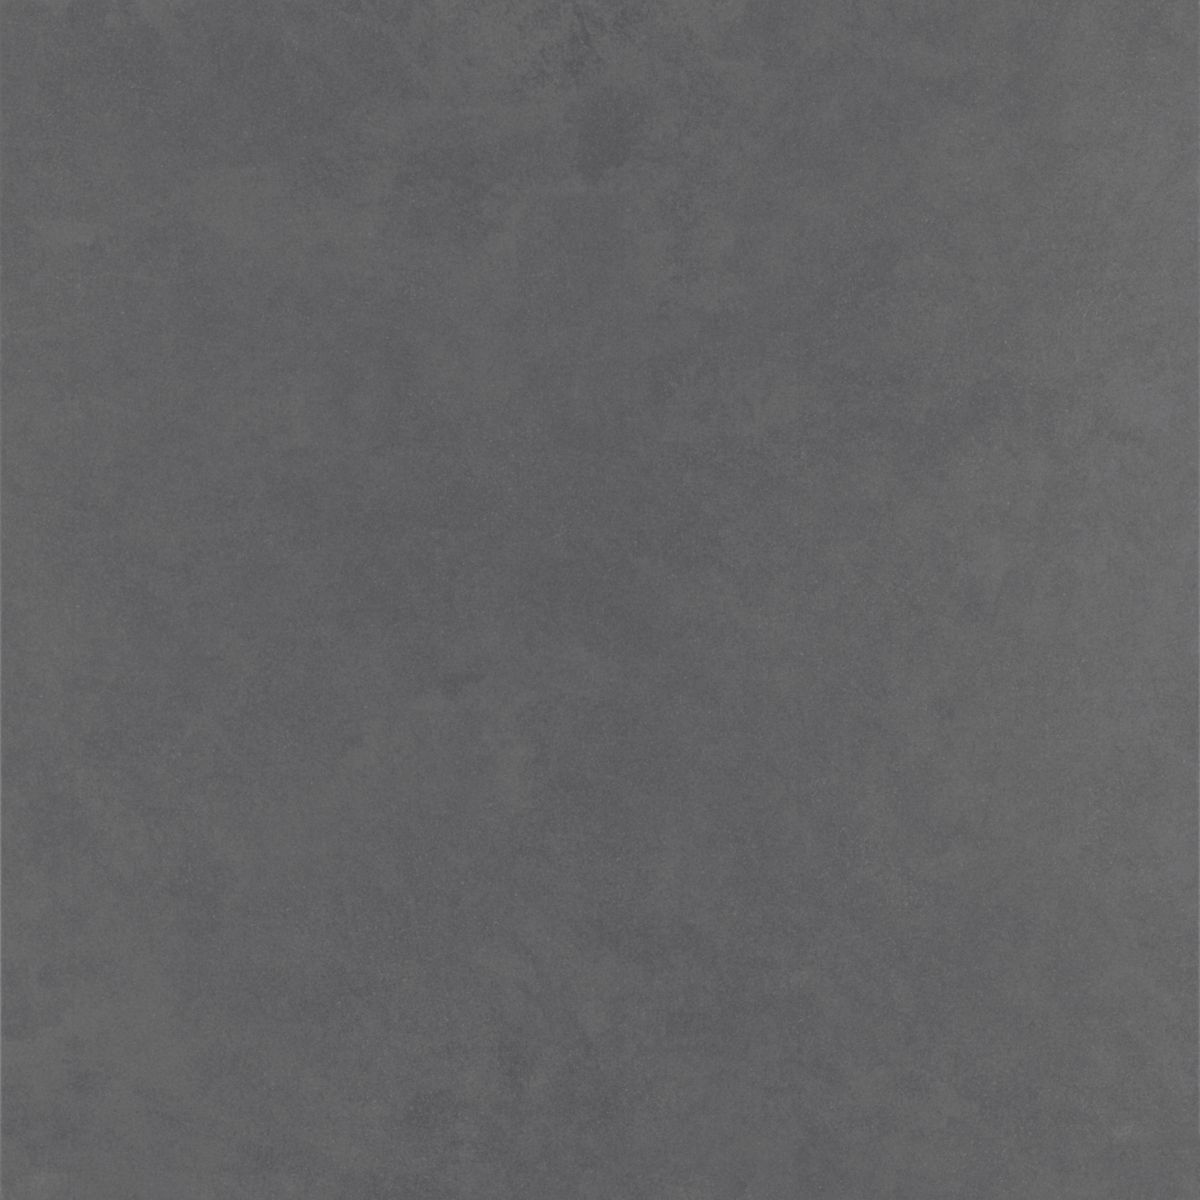 Arte One Carrelage Sol Interieur Gres Cerame Nature Grey 45x45 Cm Point P